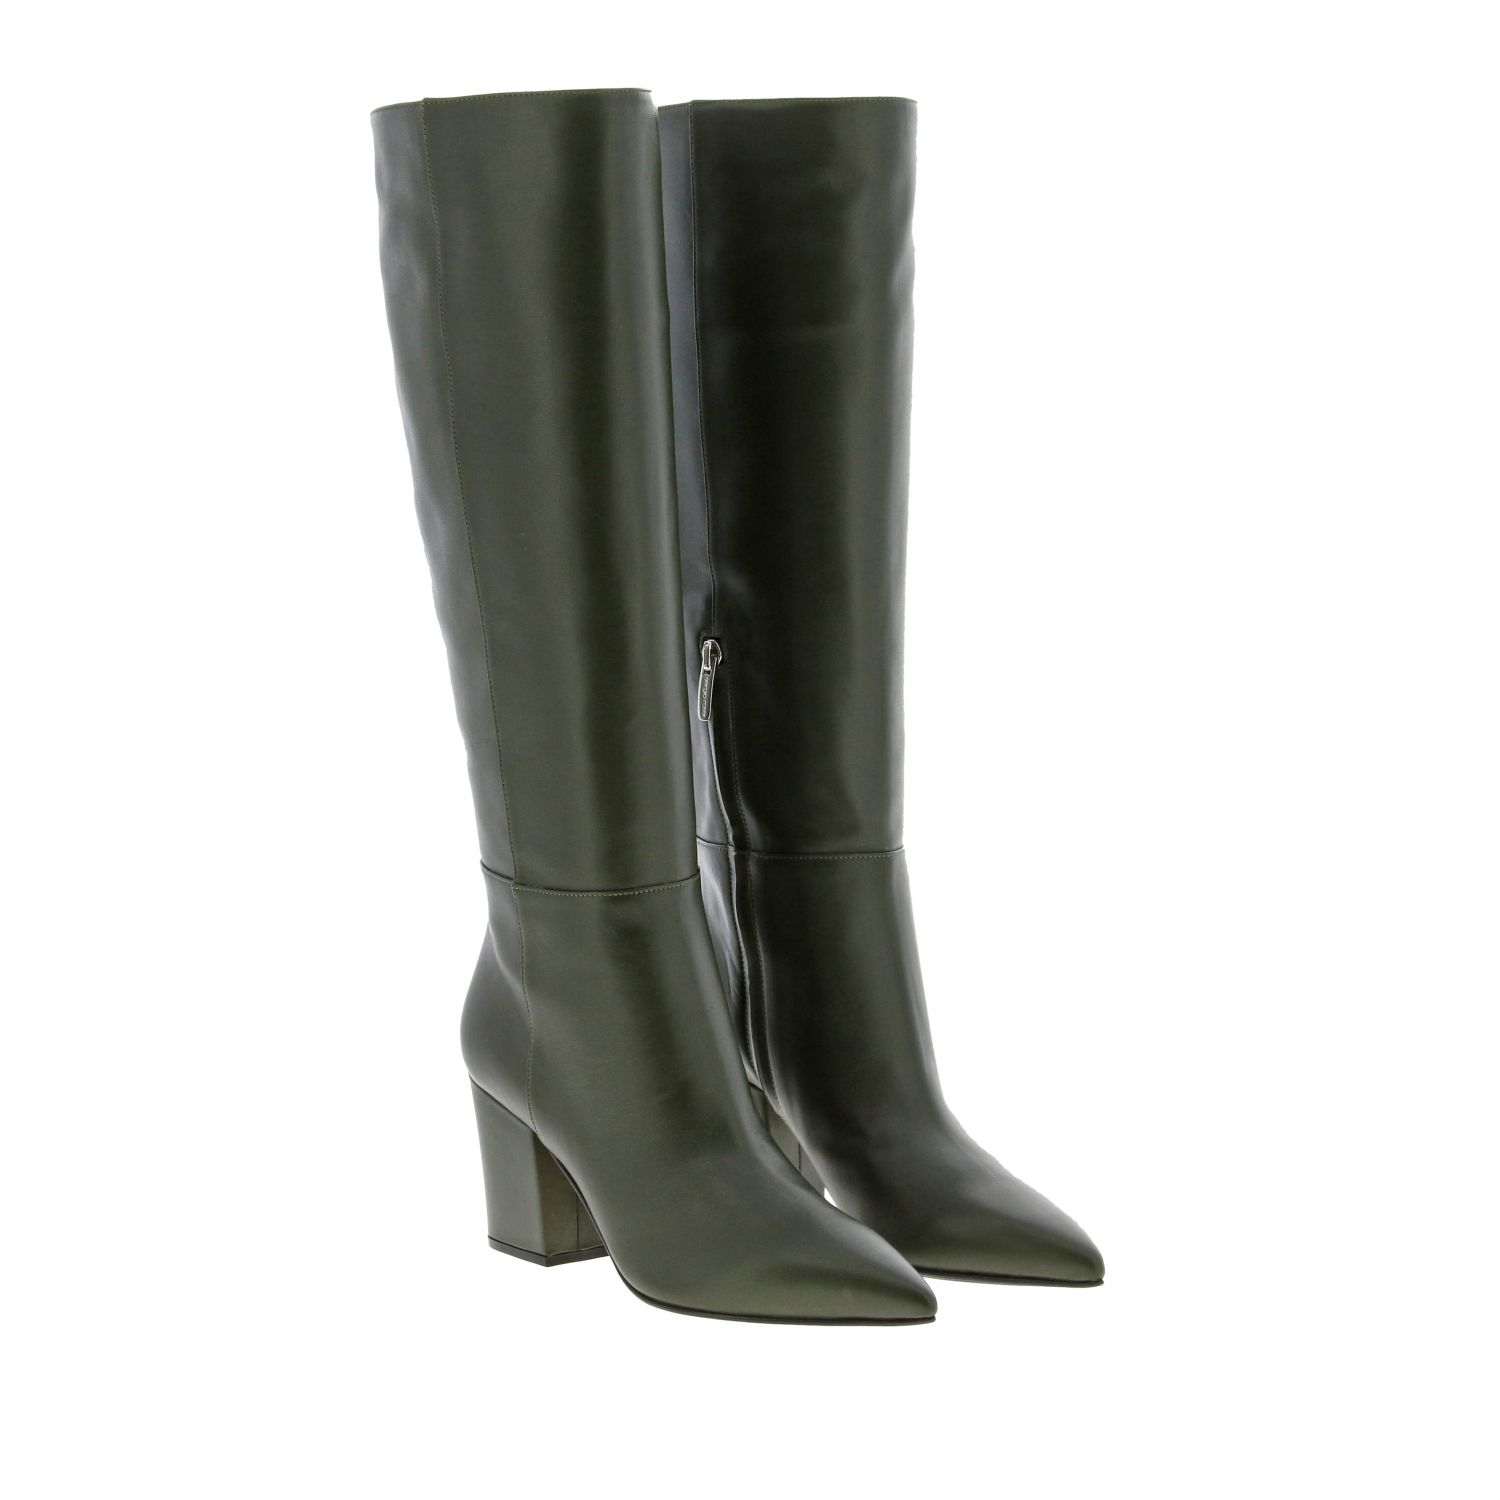 Boots women Sergio Rossi green 2